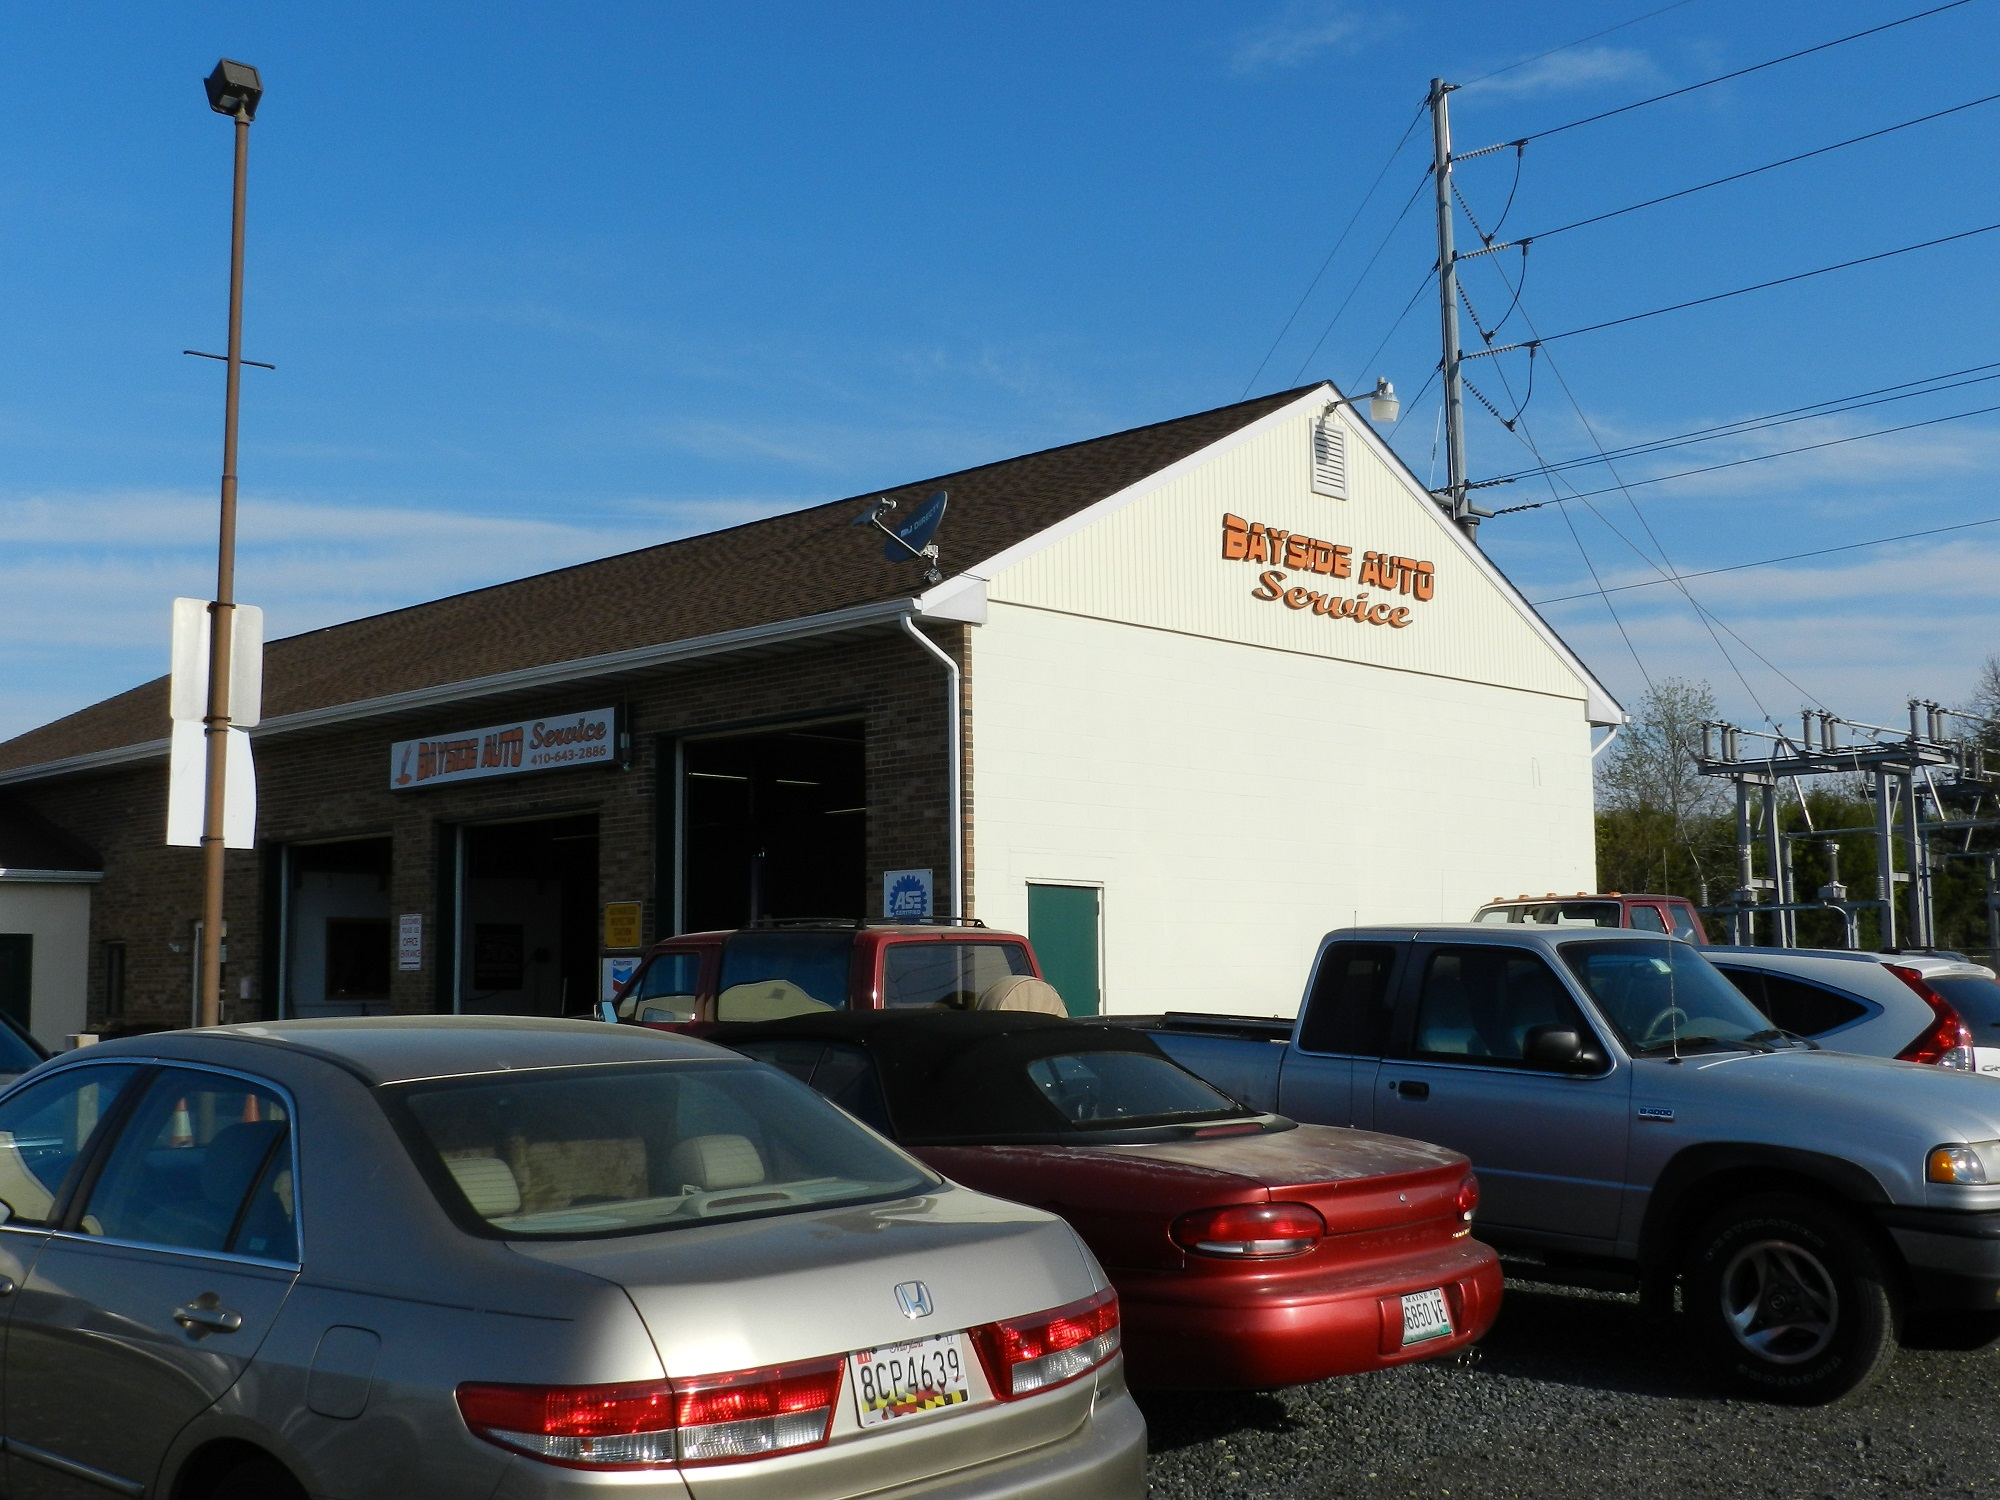 Bayside Auto Service In Stevensville Md 410 643 2